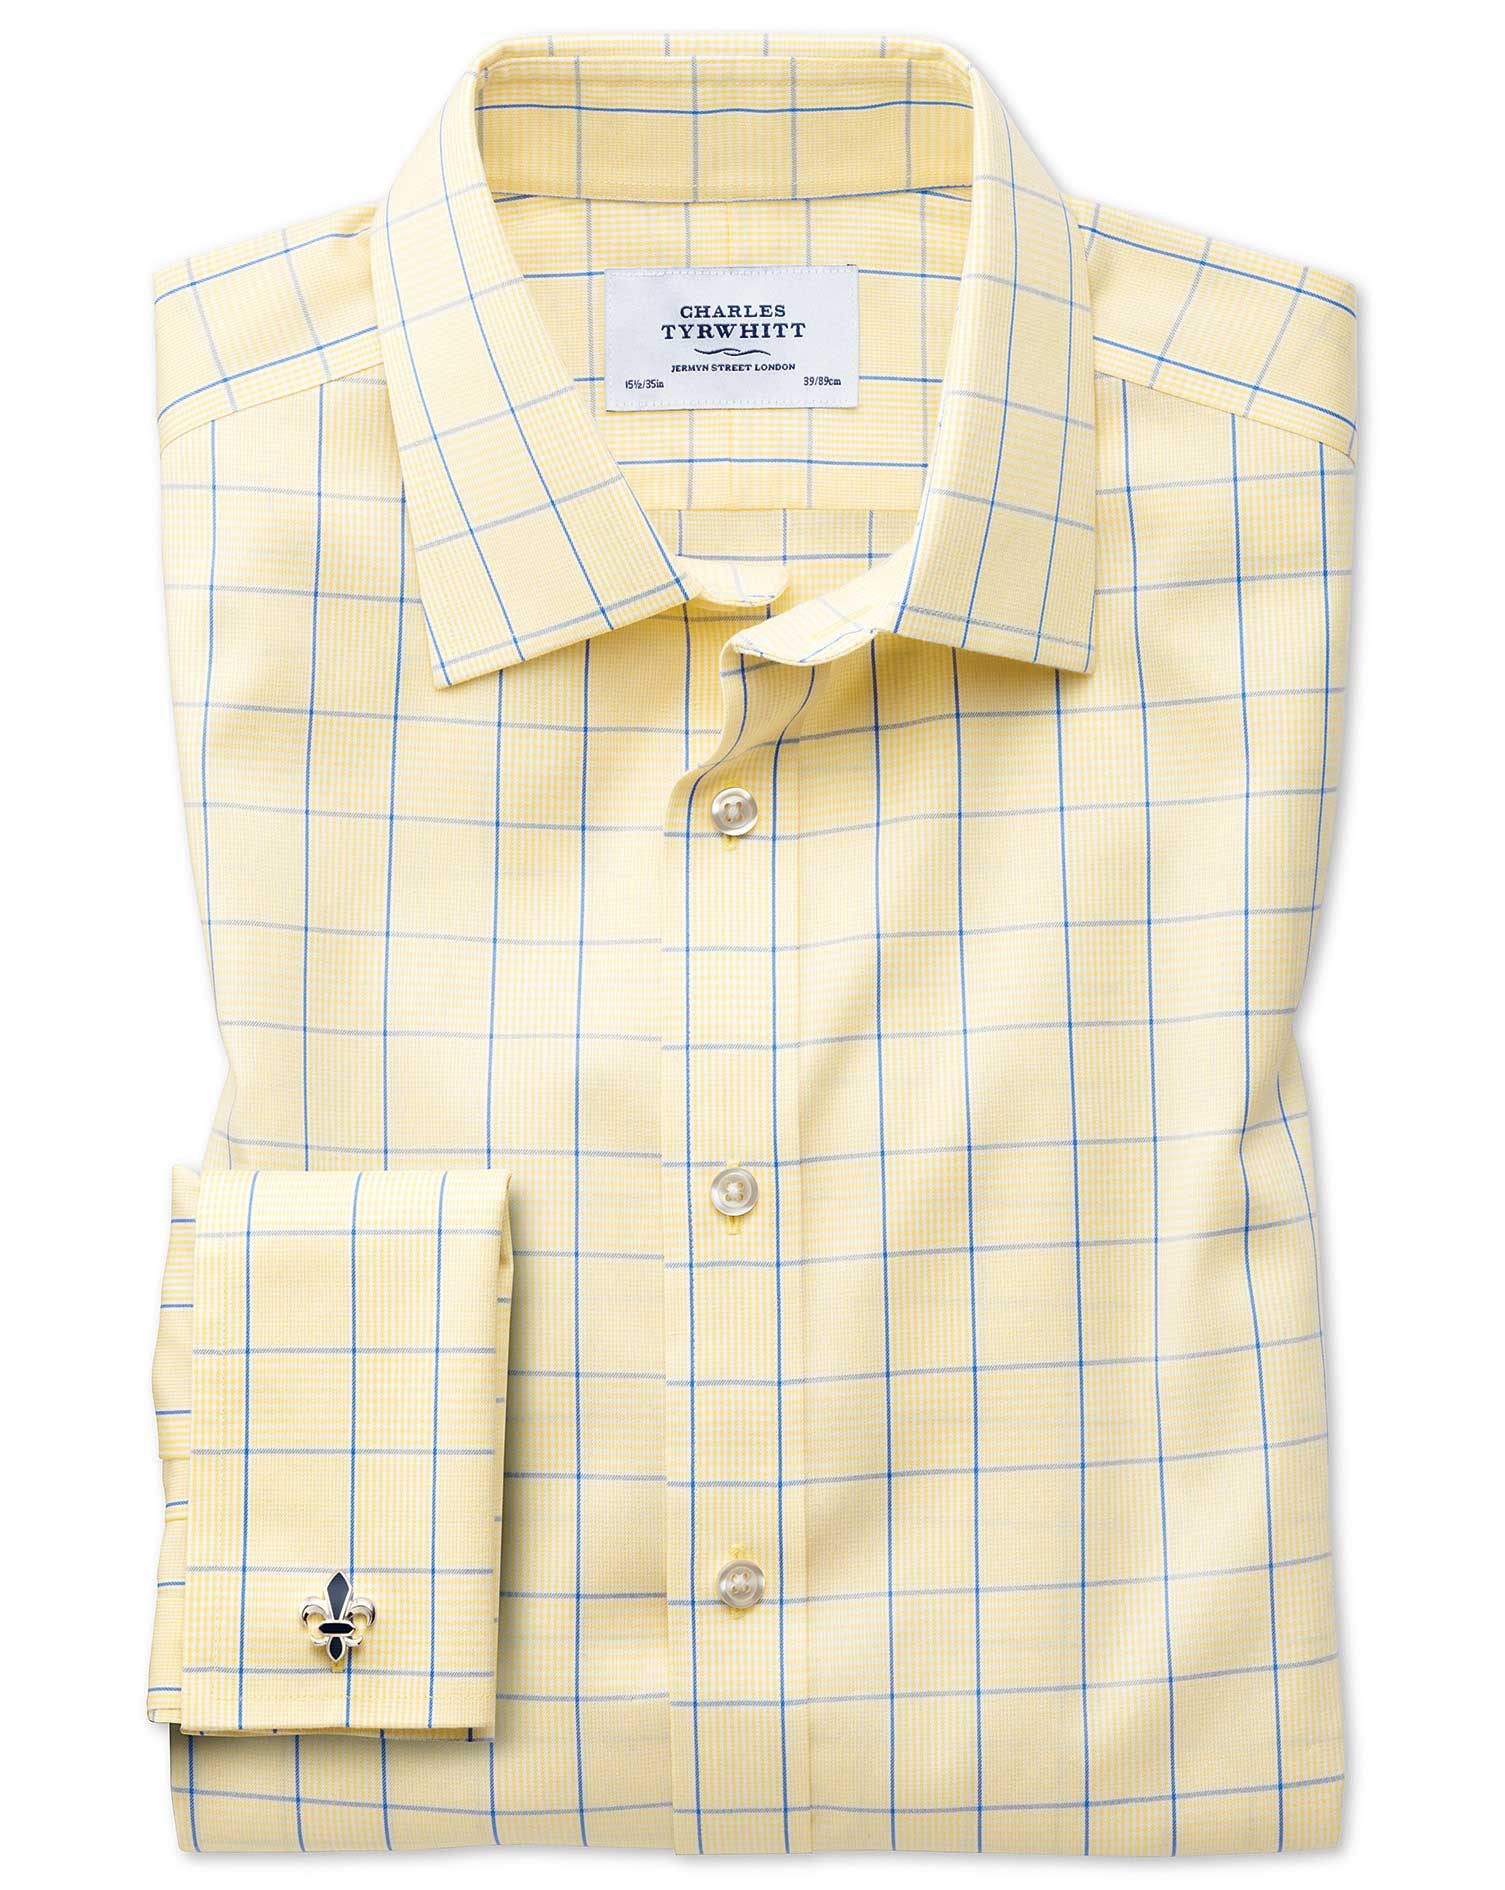 Classic Fit Non-Iron Prince Of Wales Yellow and Royal Blue Cotton Formal Shirt Double Cuff Size 16/3